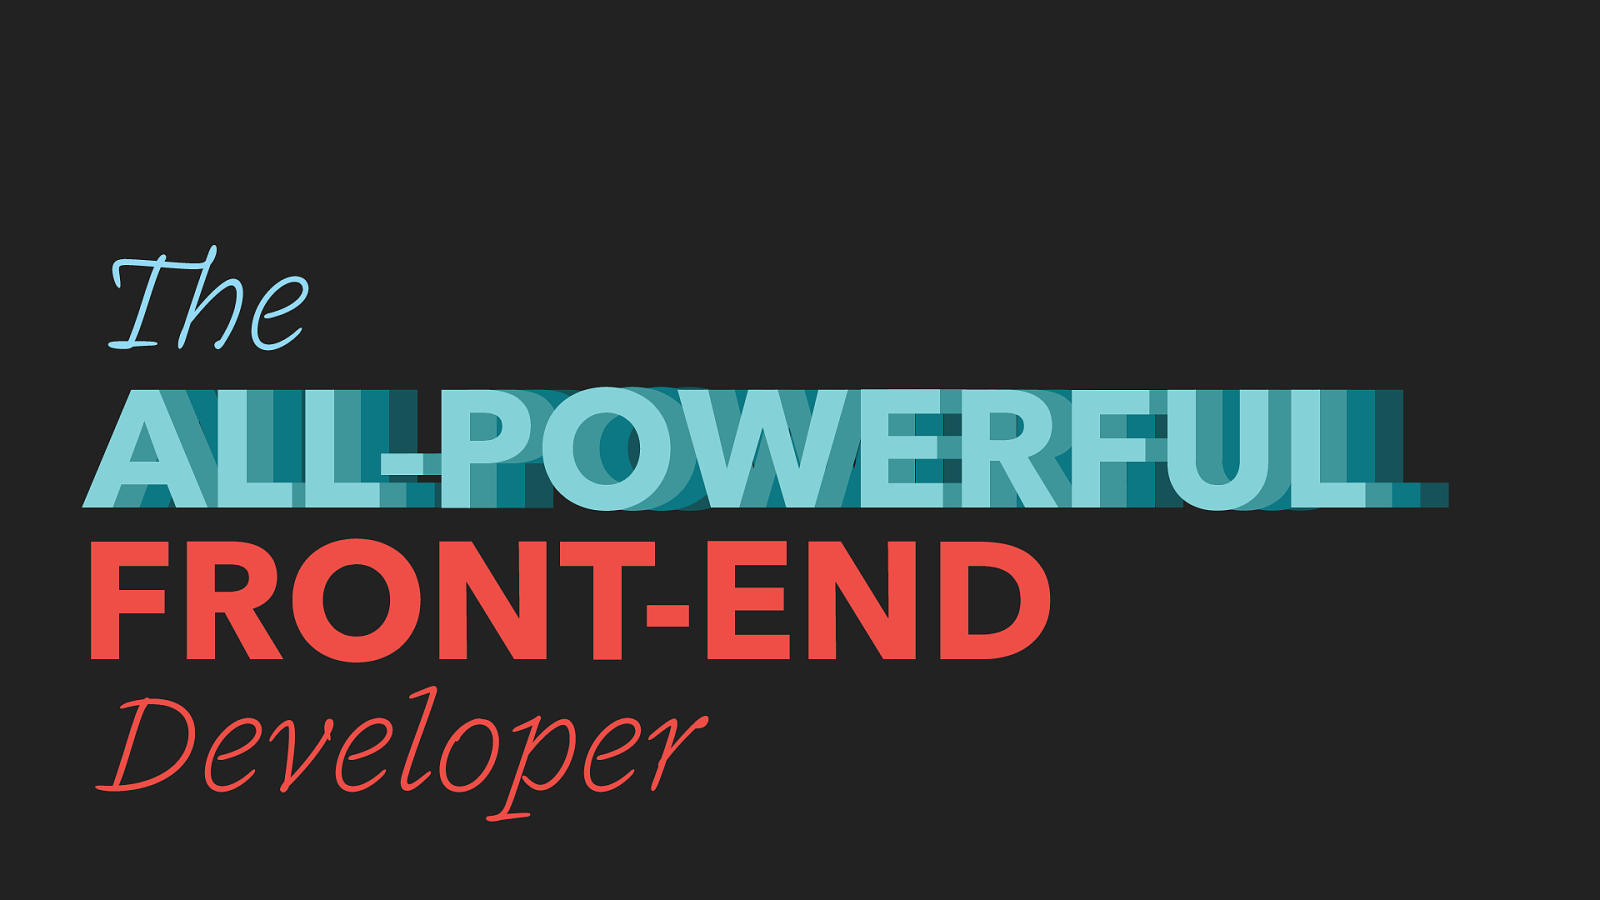 The All-Powerful Front-End Developer